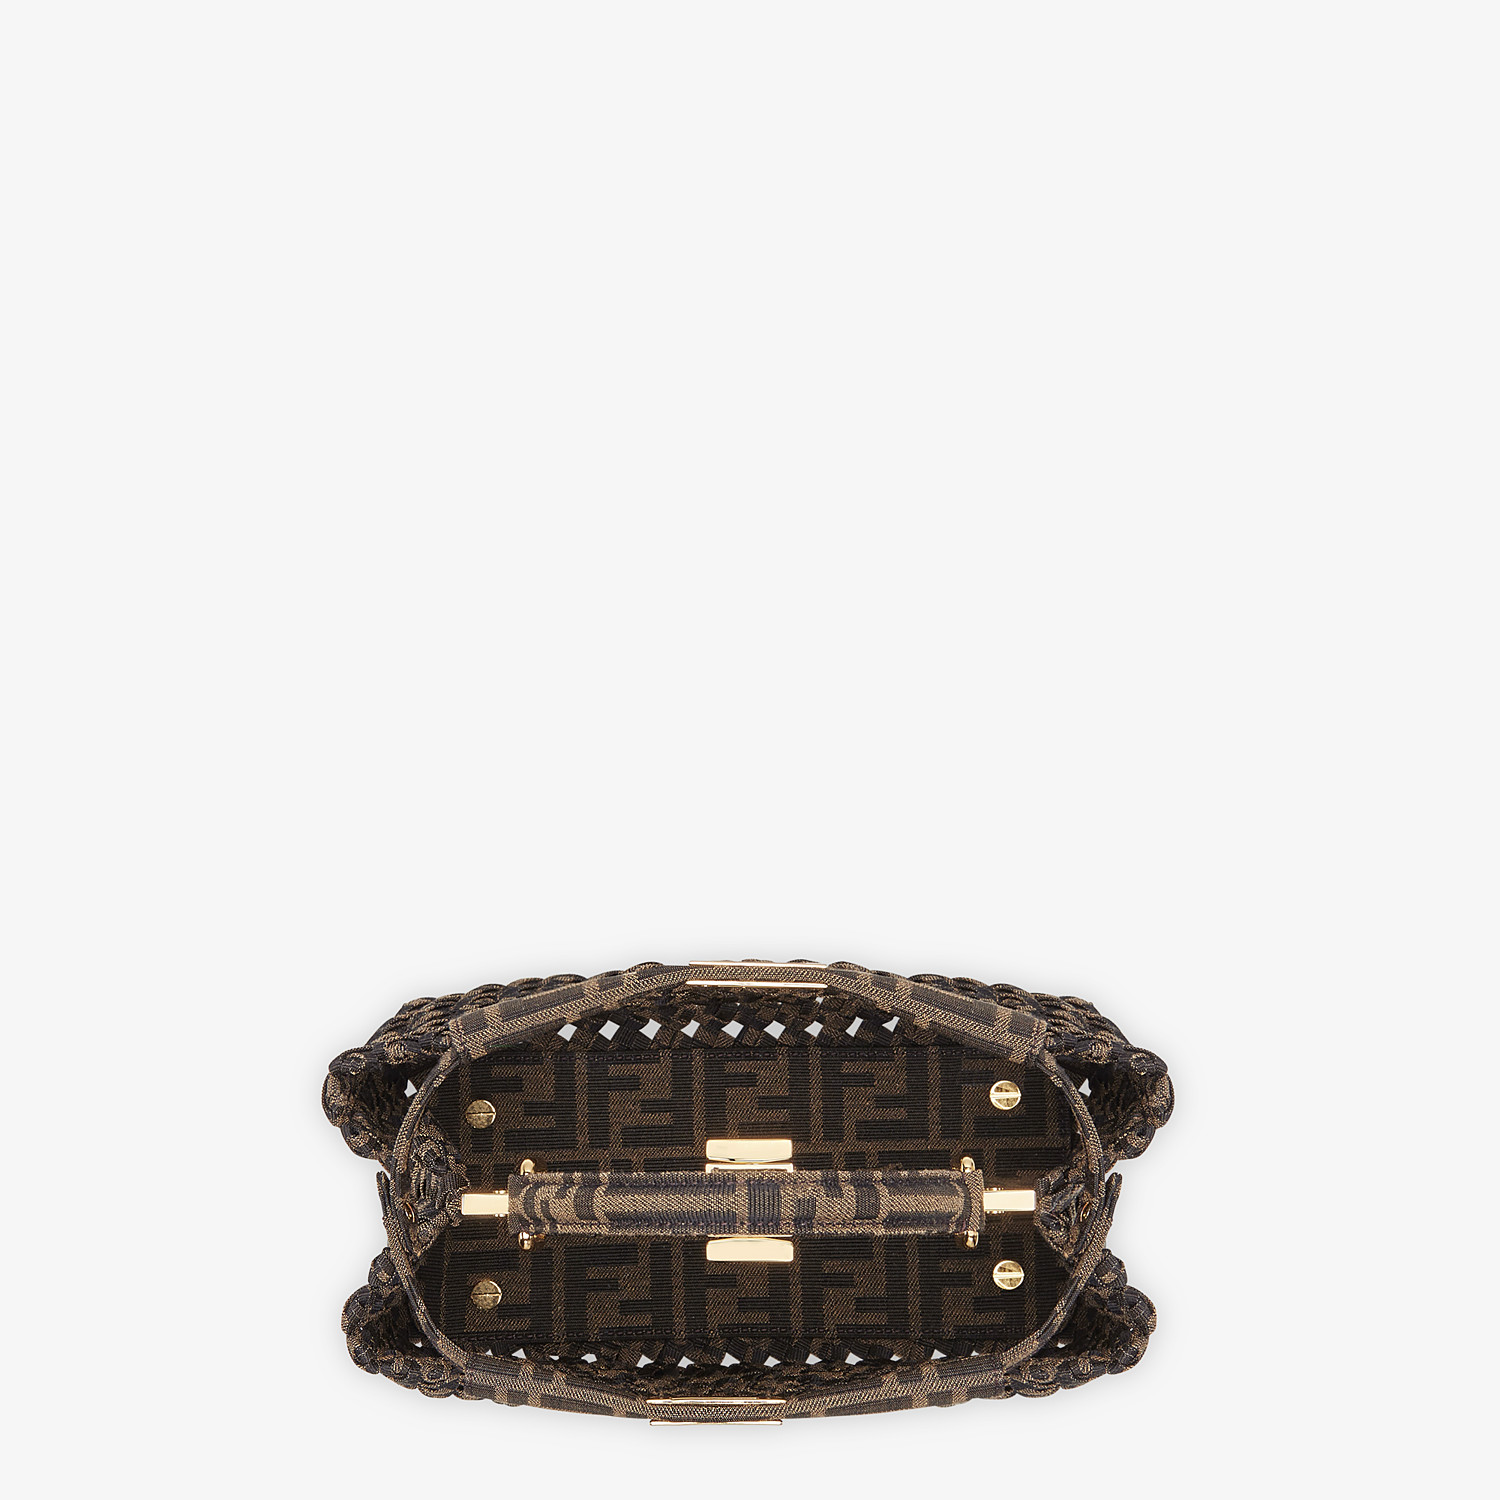 FENDI PEEKABOO ICONIC MINI - Jacquard fabric interlace bag - view 5 detail